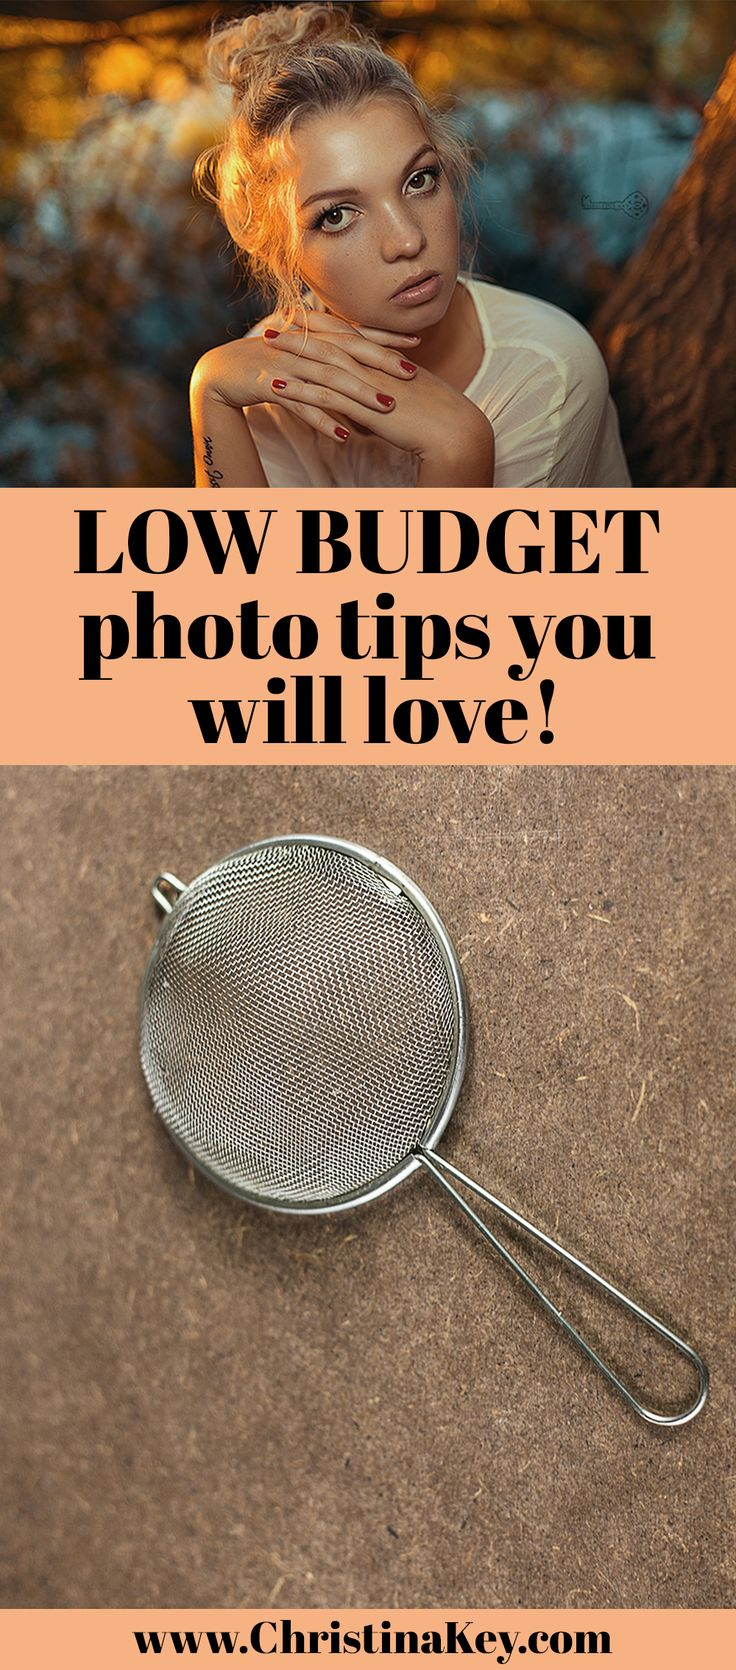 Photography Tips: Low Budget photo tips you will love! / I show you how you can create amazing pictures with simple household items - have a look now! / Blog Post by CHRISTINA KEY - the photography-, fashion-, lifestyle and food blog from Berlin, Germany